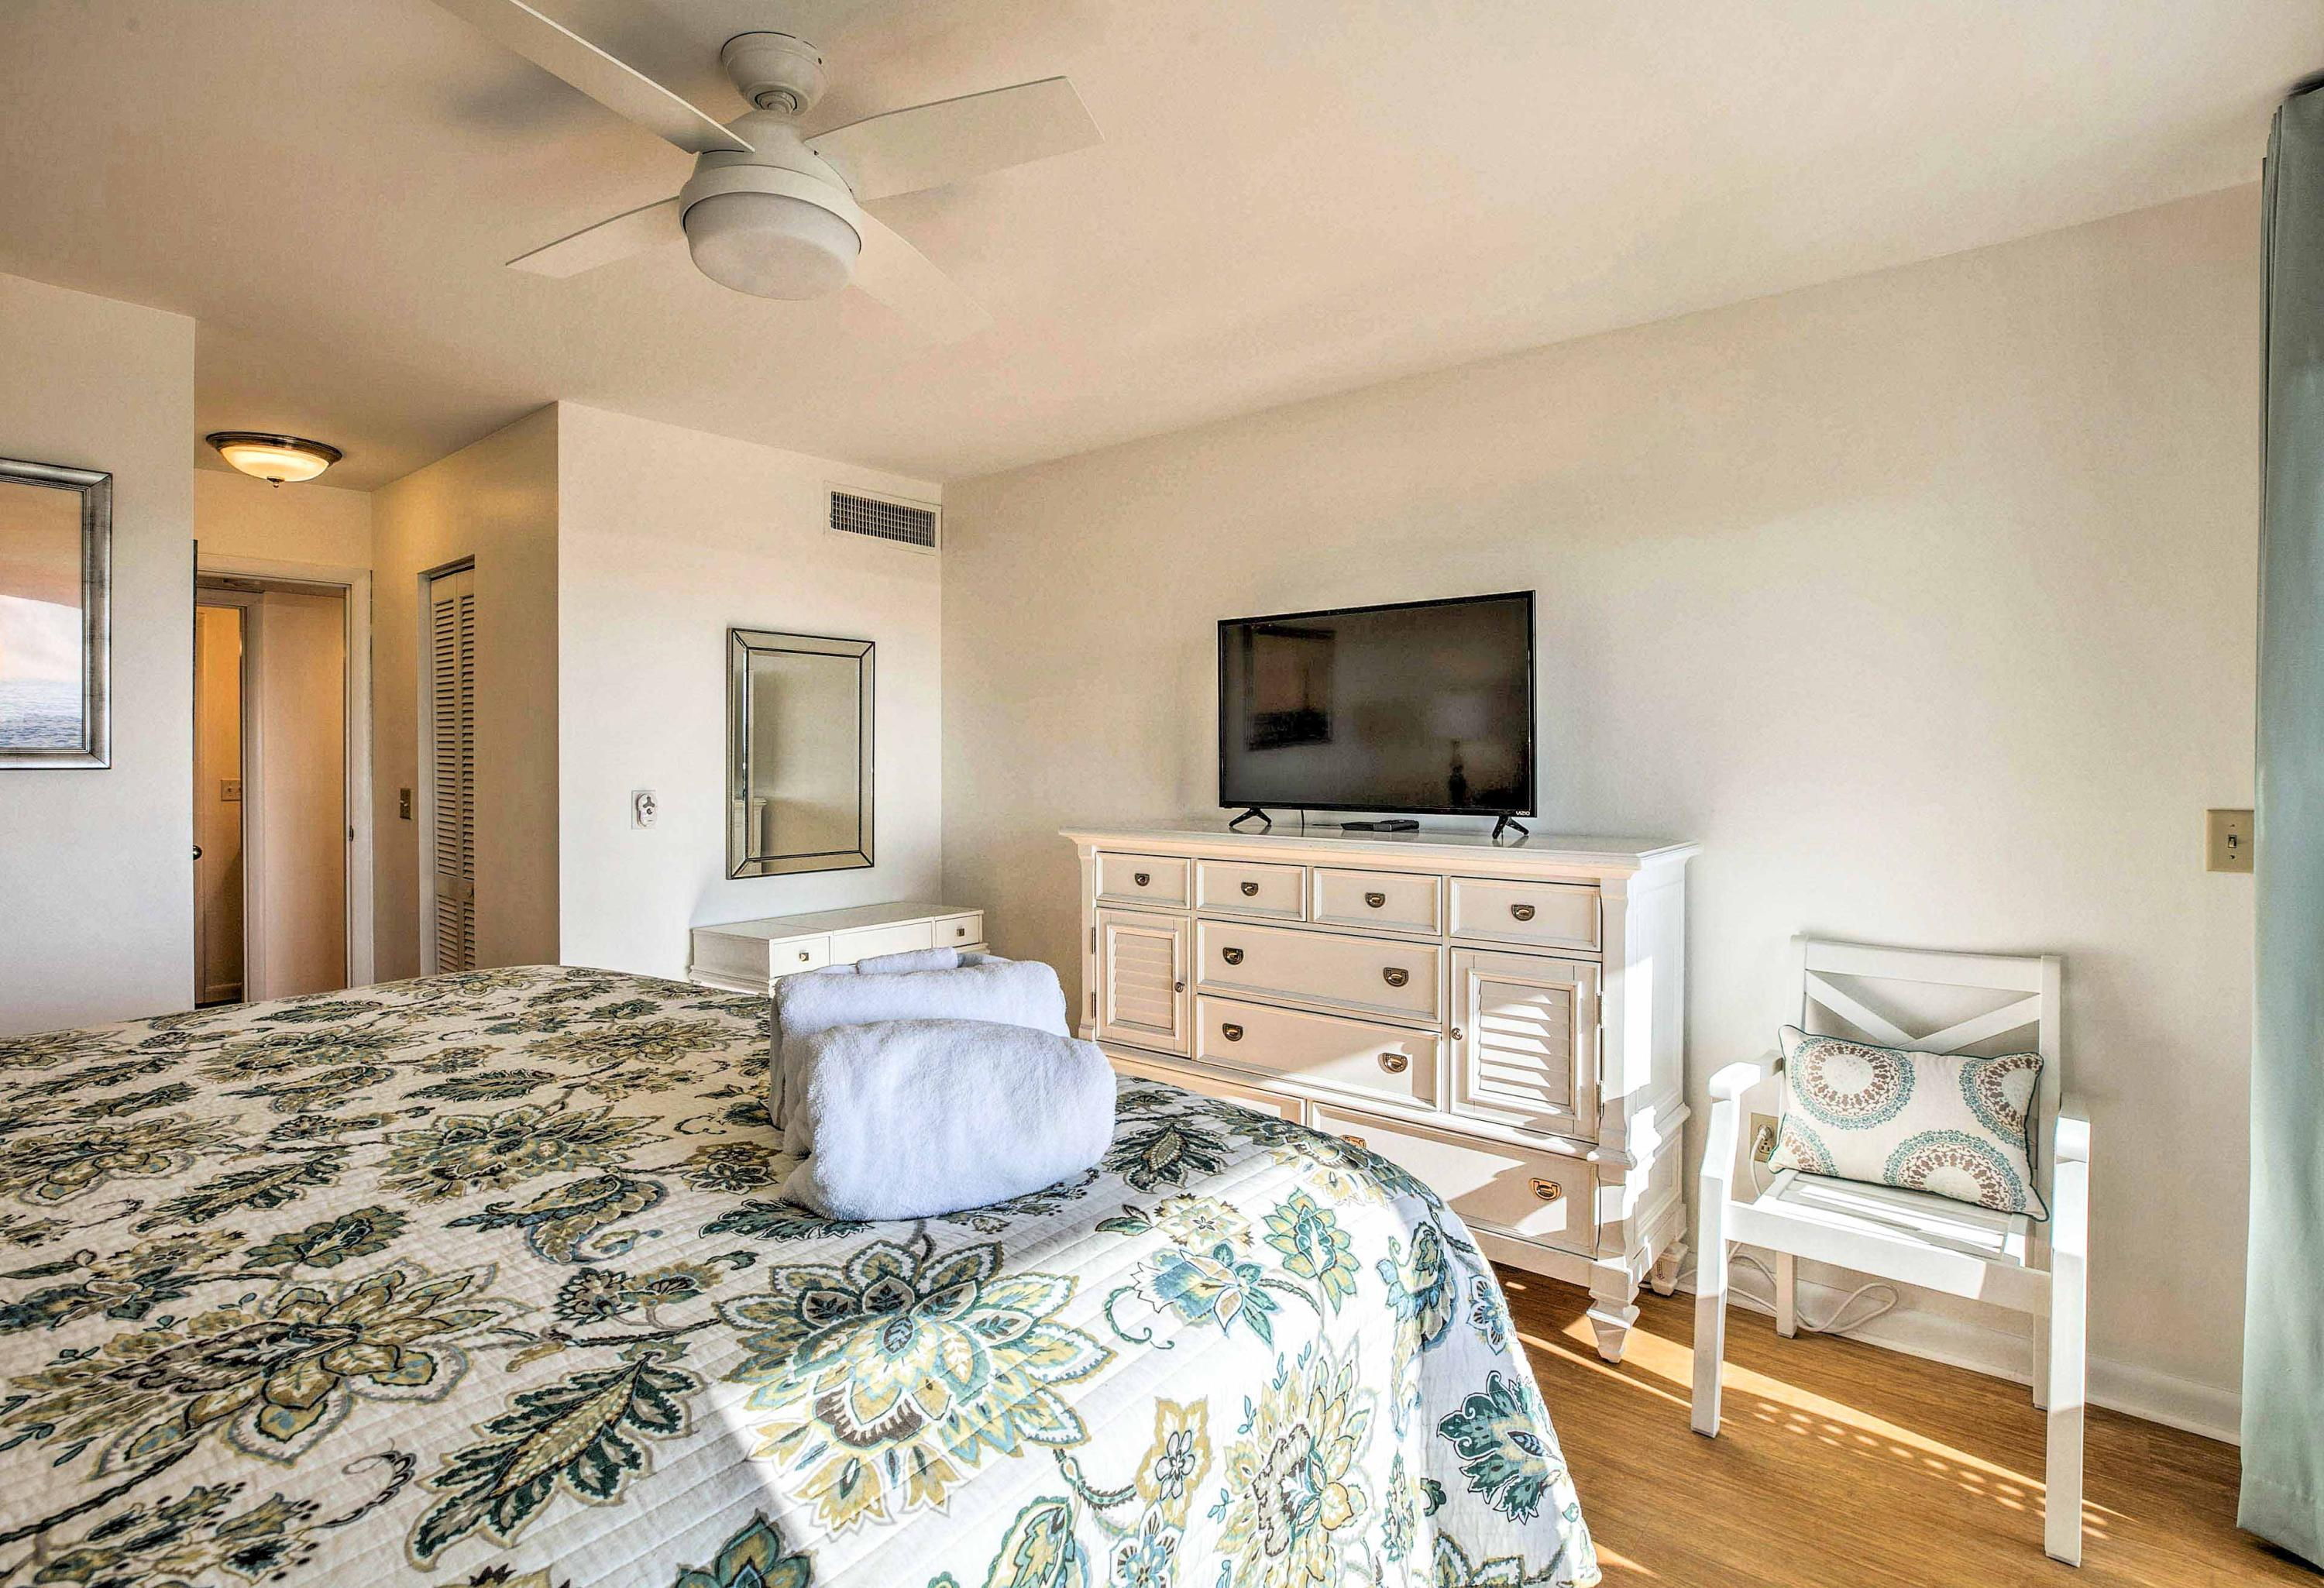 Mariners Cay Homes For Sale - 93 Mariners Cay, Folly Beach, SC - 18